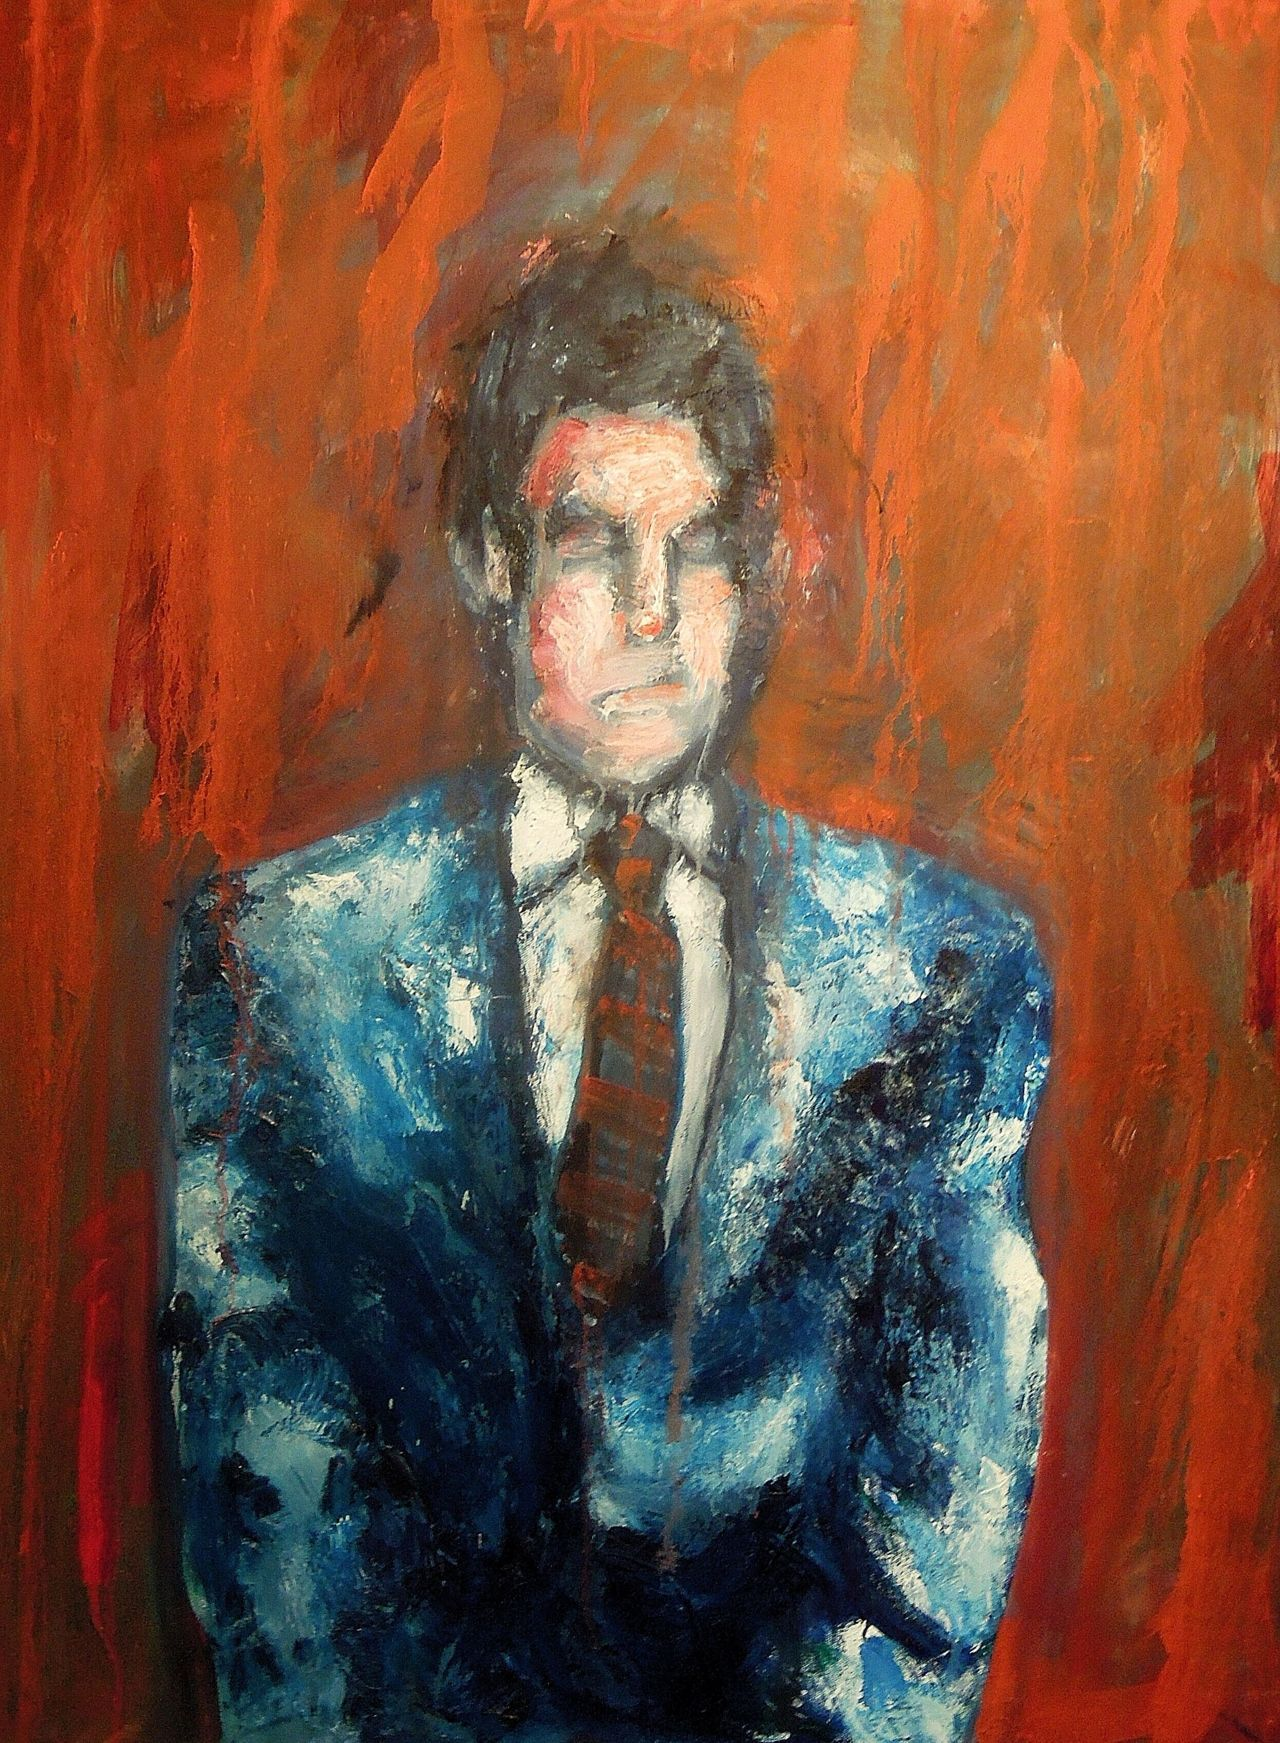 "Man in Suit30"" x 40""Oil on canvas2009"